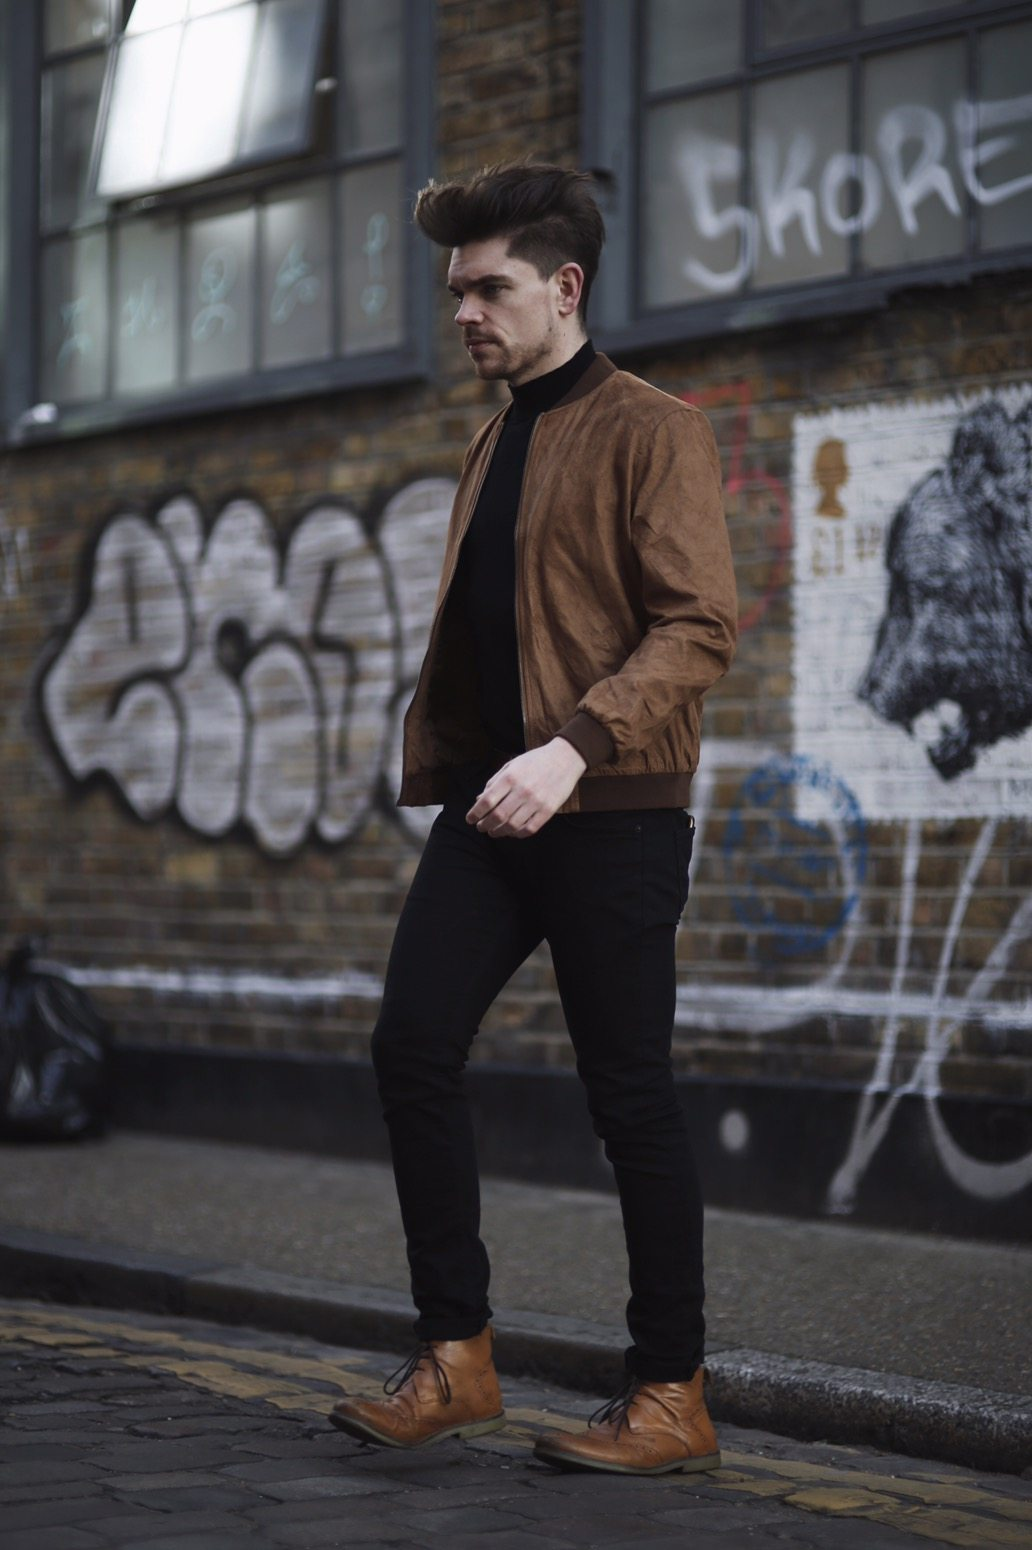 Robin-James-Man-For-Himself-Menswear-Outfit-Suede-Bomber